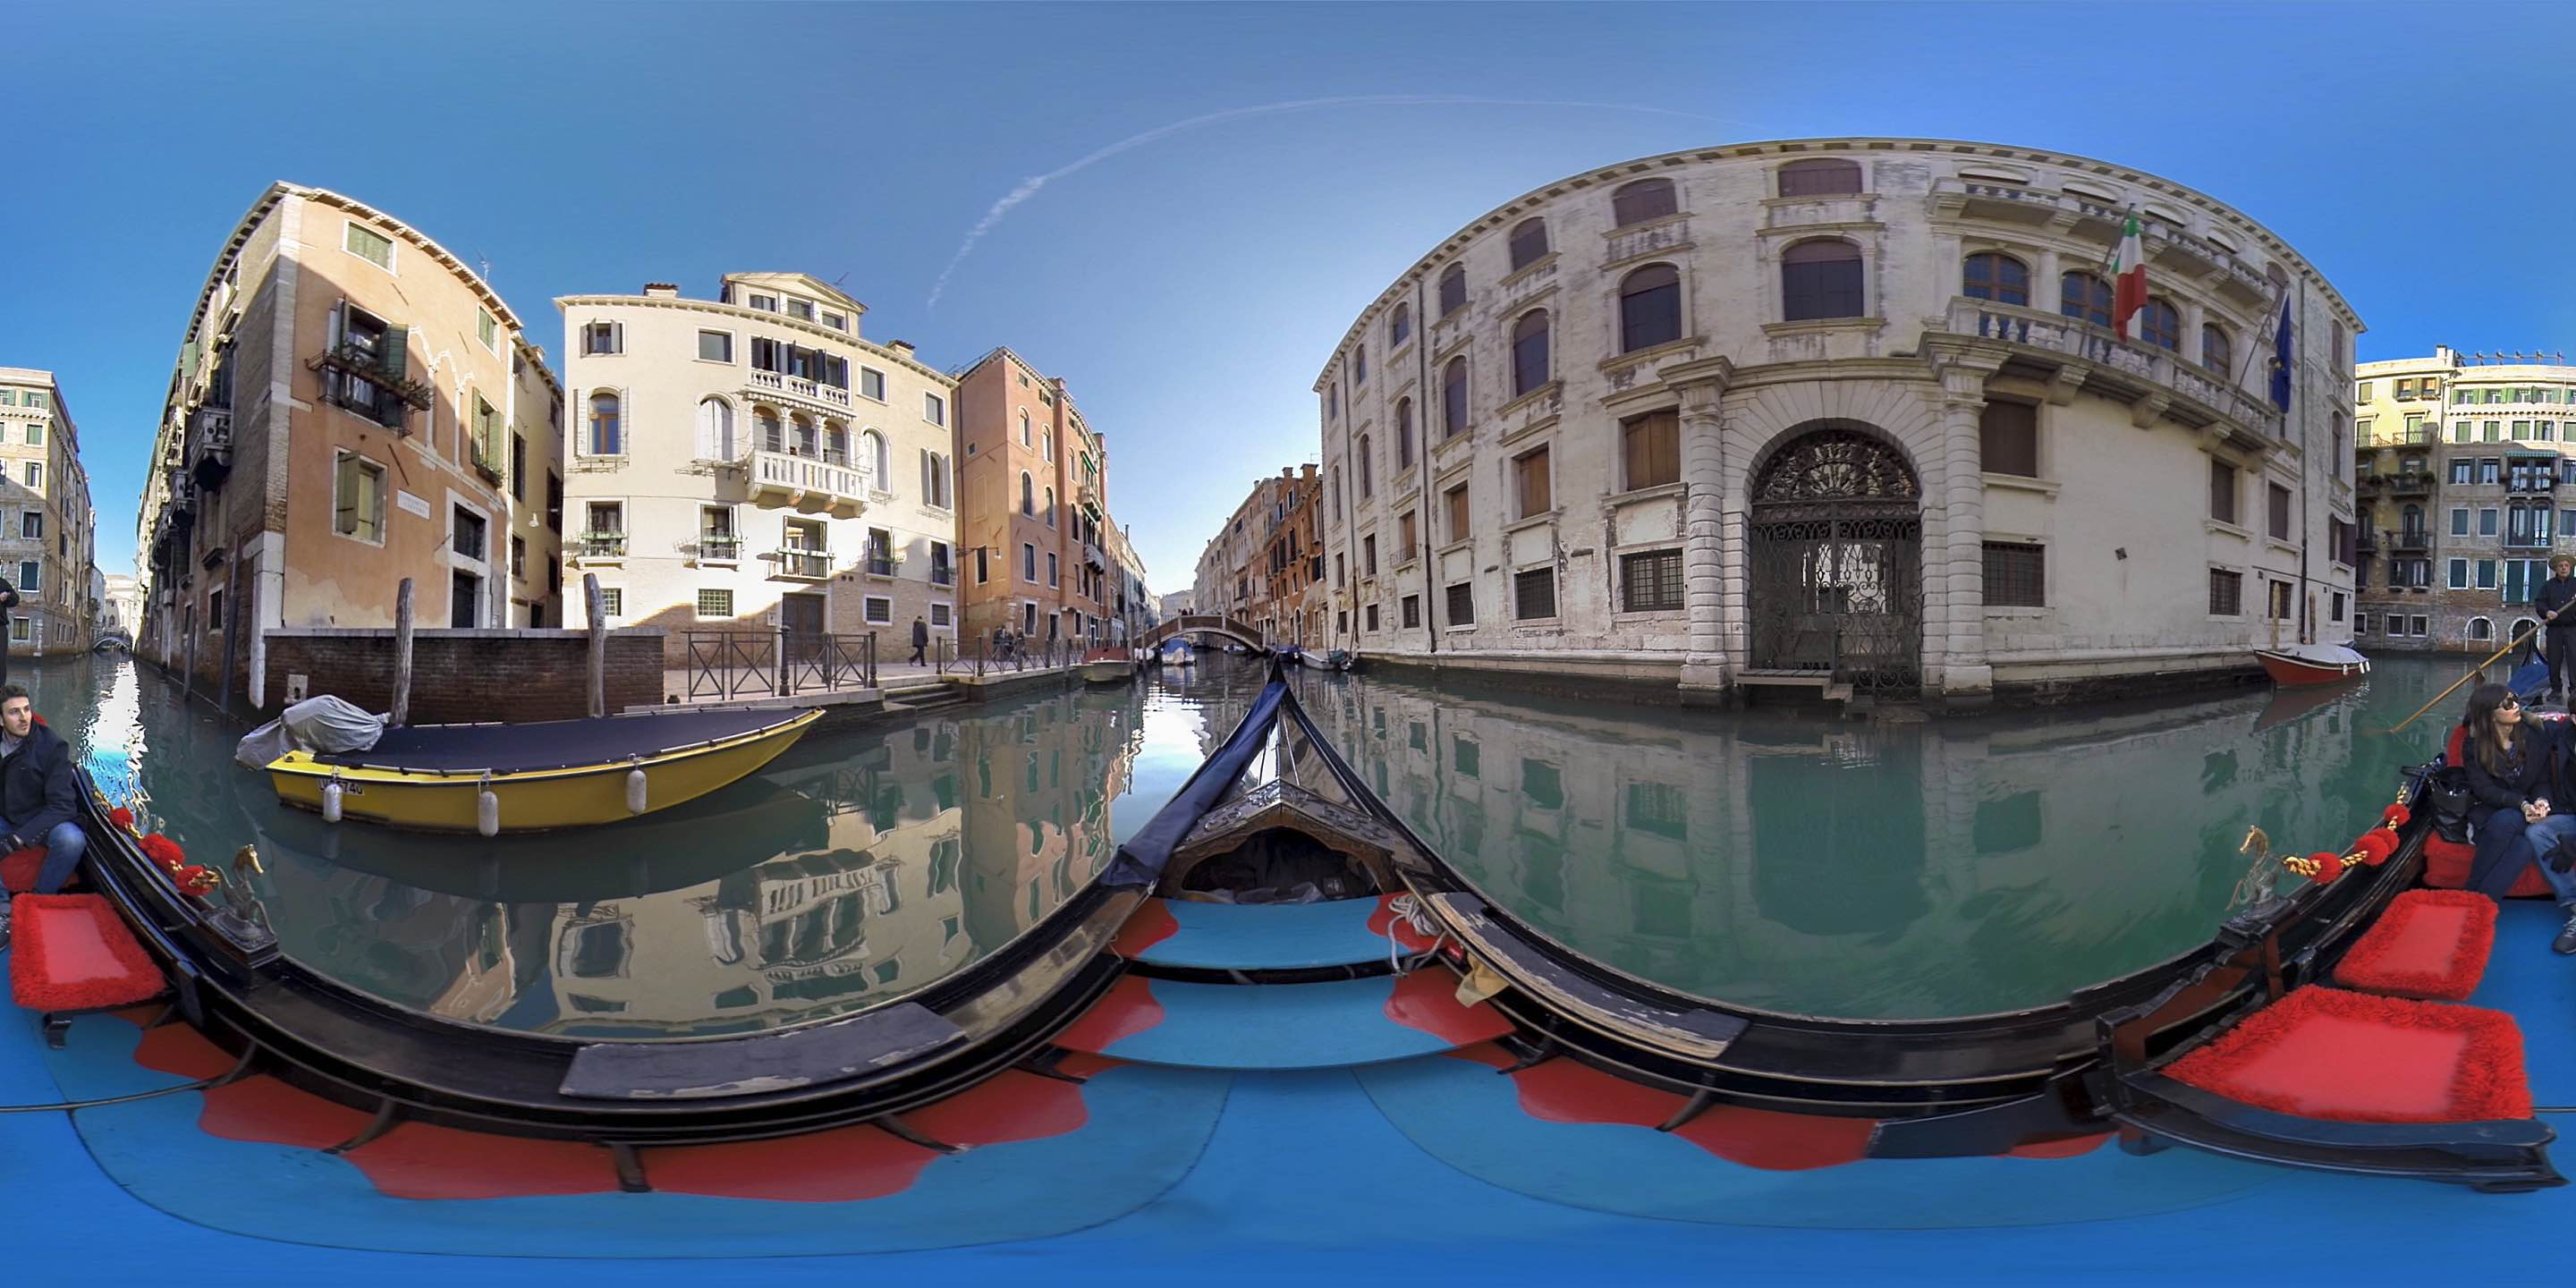 10 Samsung Gear VR Panoramas from Immersive Media's 360